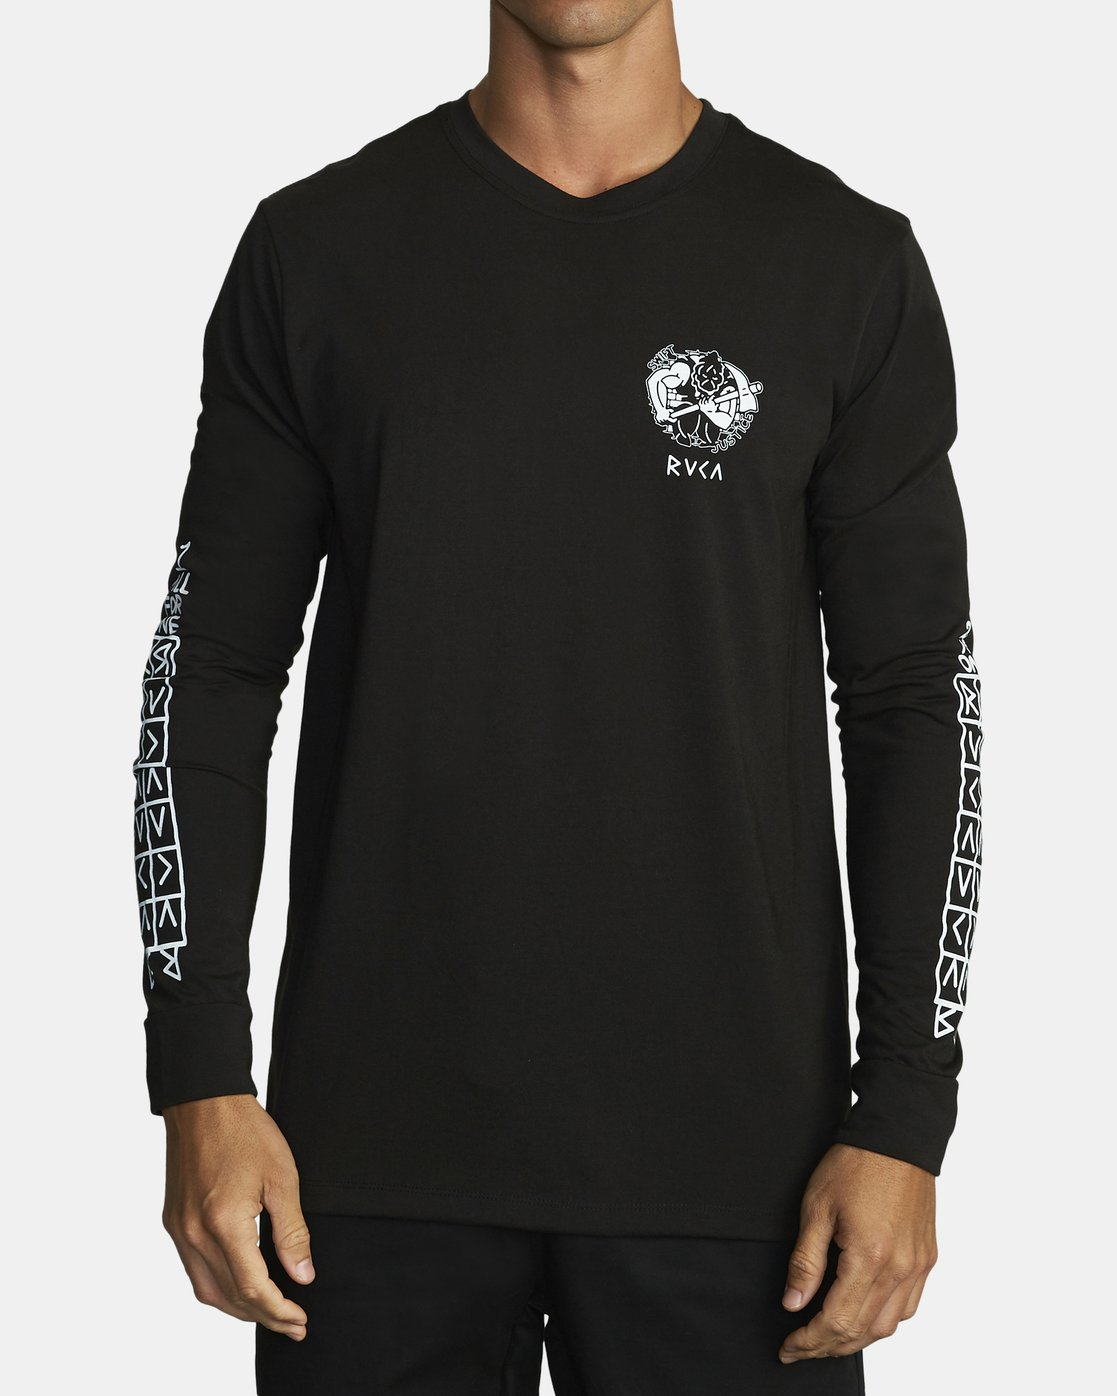 0 PROTECTION FROM LONG SLEEVE T-SHIRT Black V4532RPR RVCA